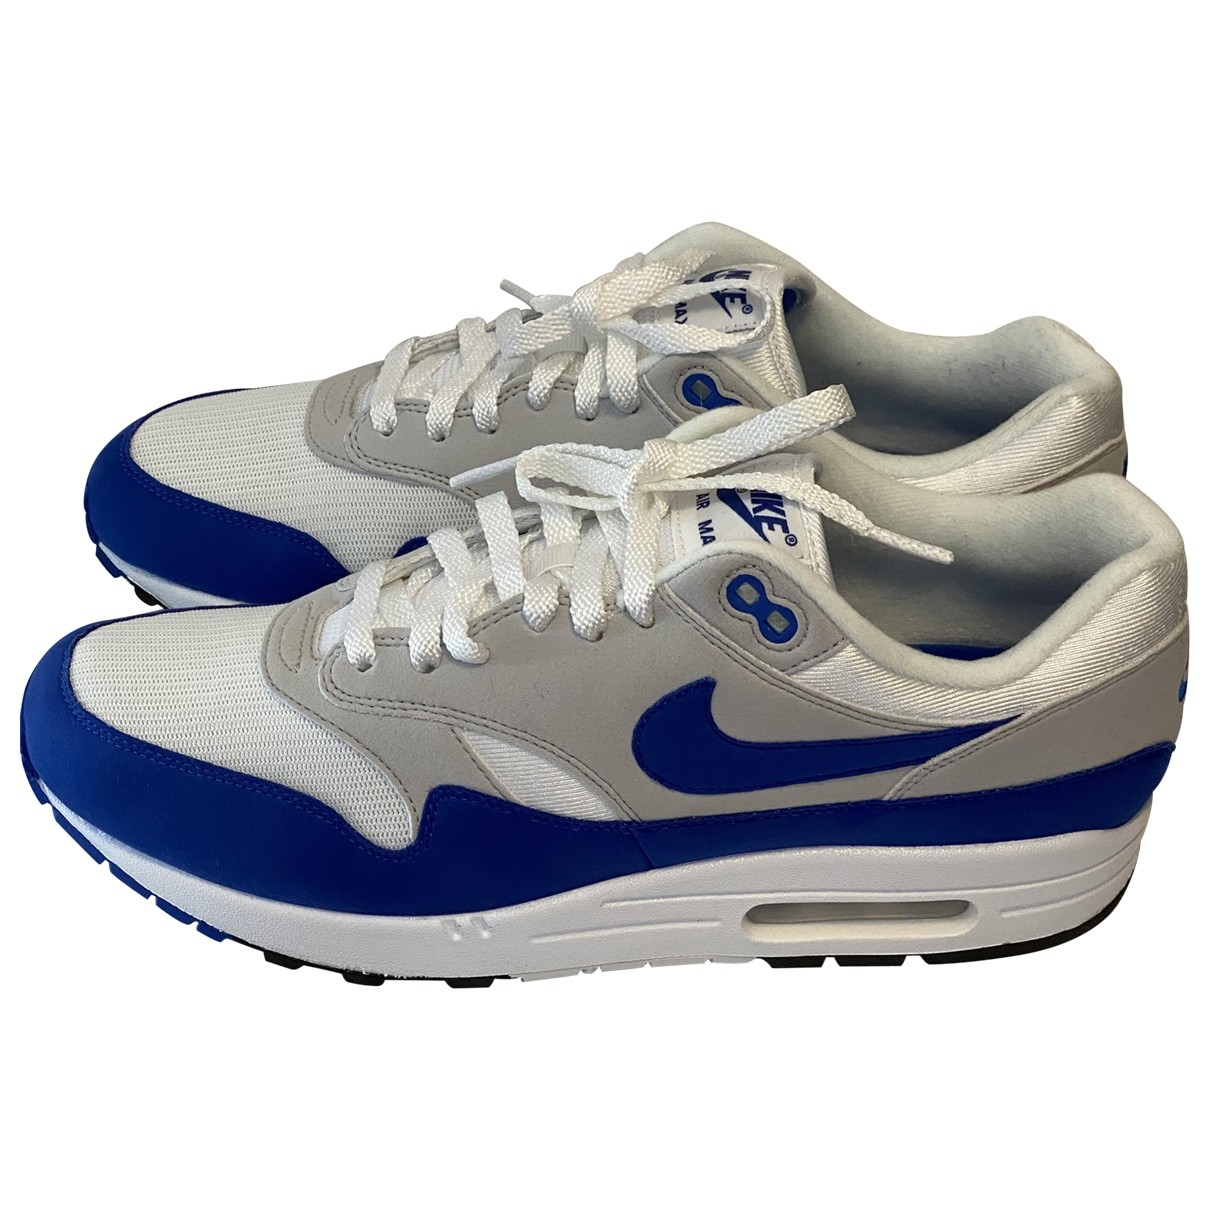 Nike Air Max 1 Cloth Trainers for Men 44.5 EU